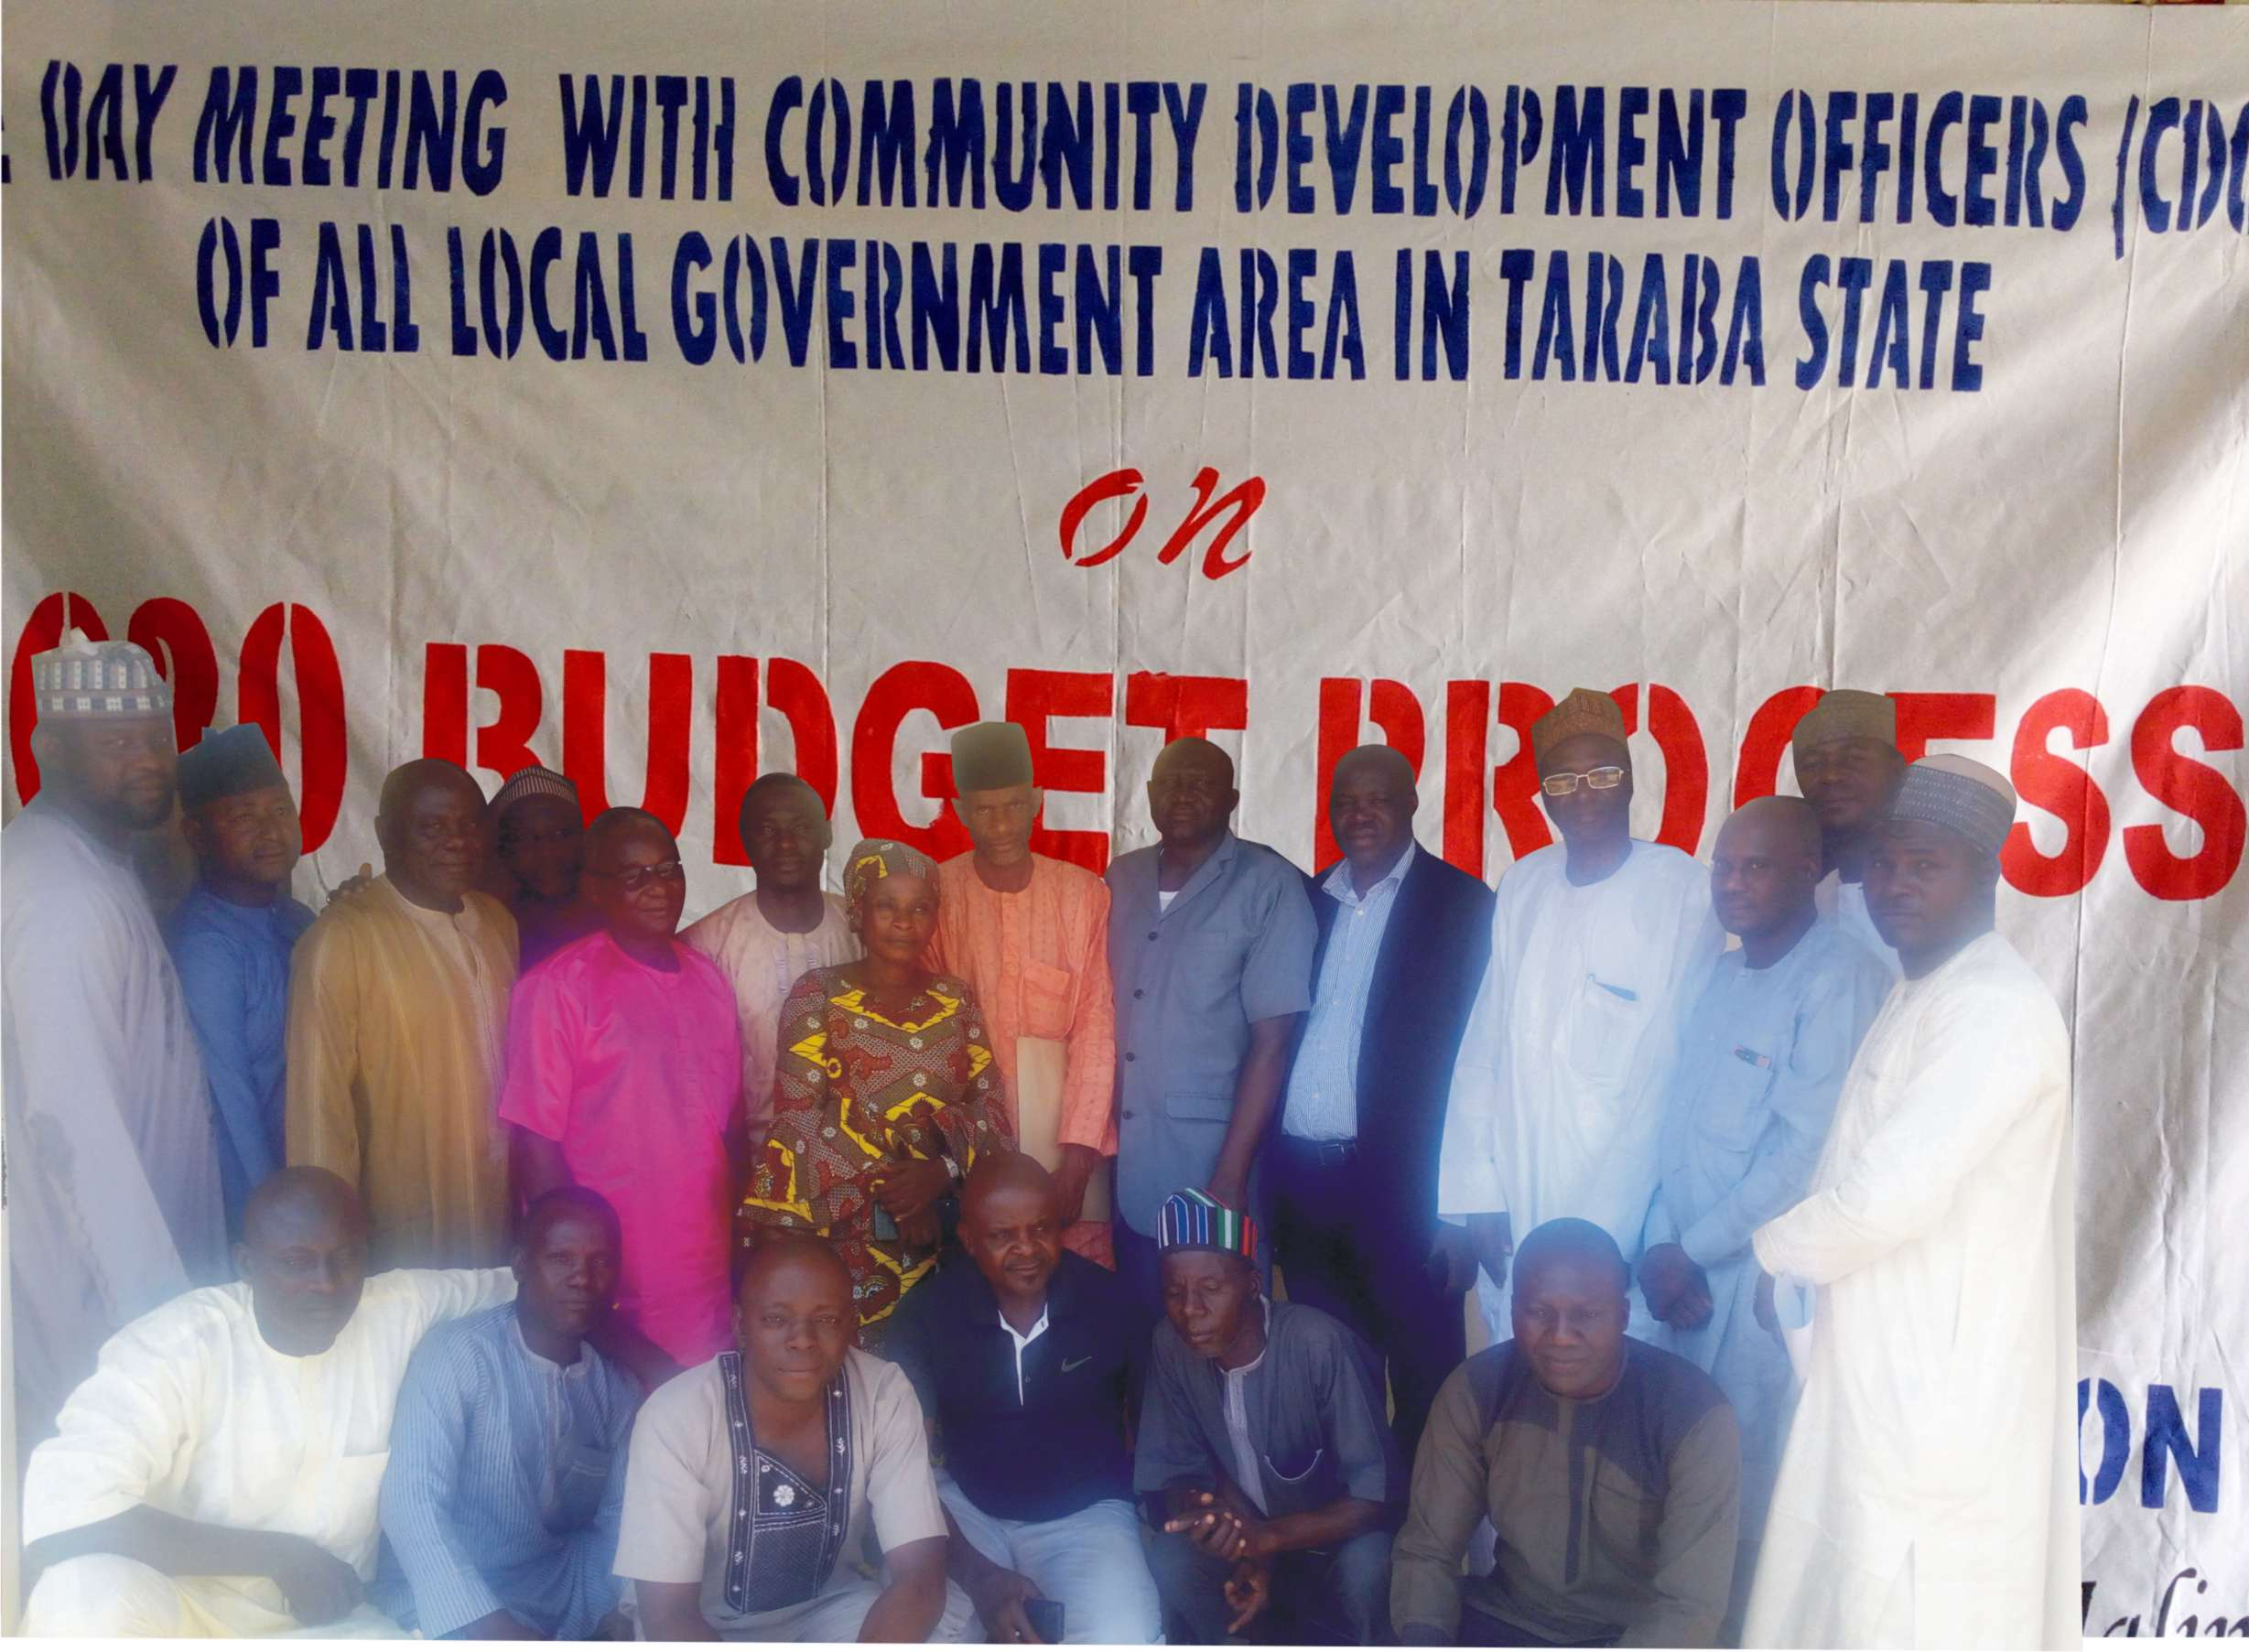 CDOs PHOTOGRAPH IN 2020 BUDGET PROCESS